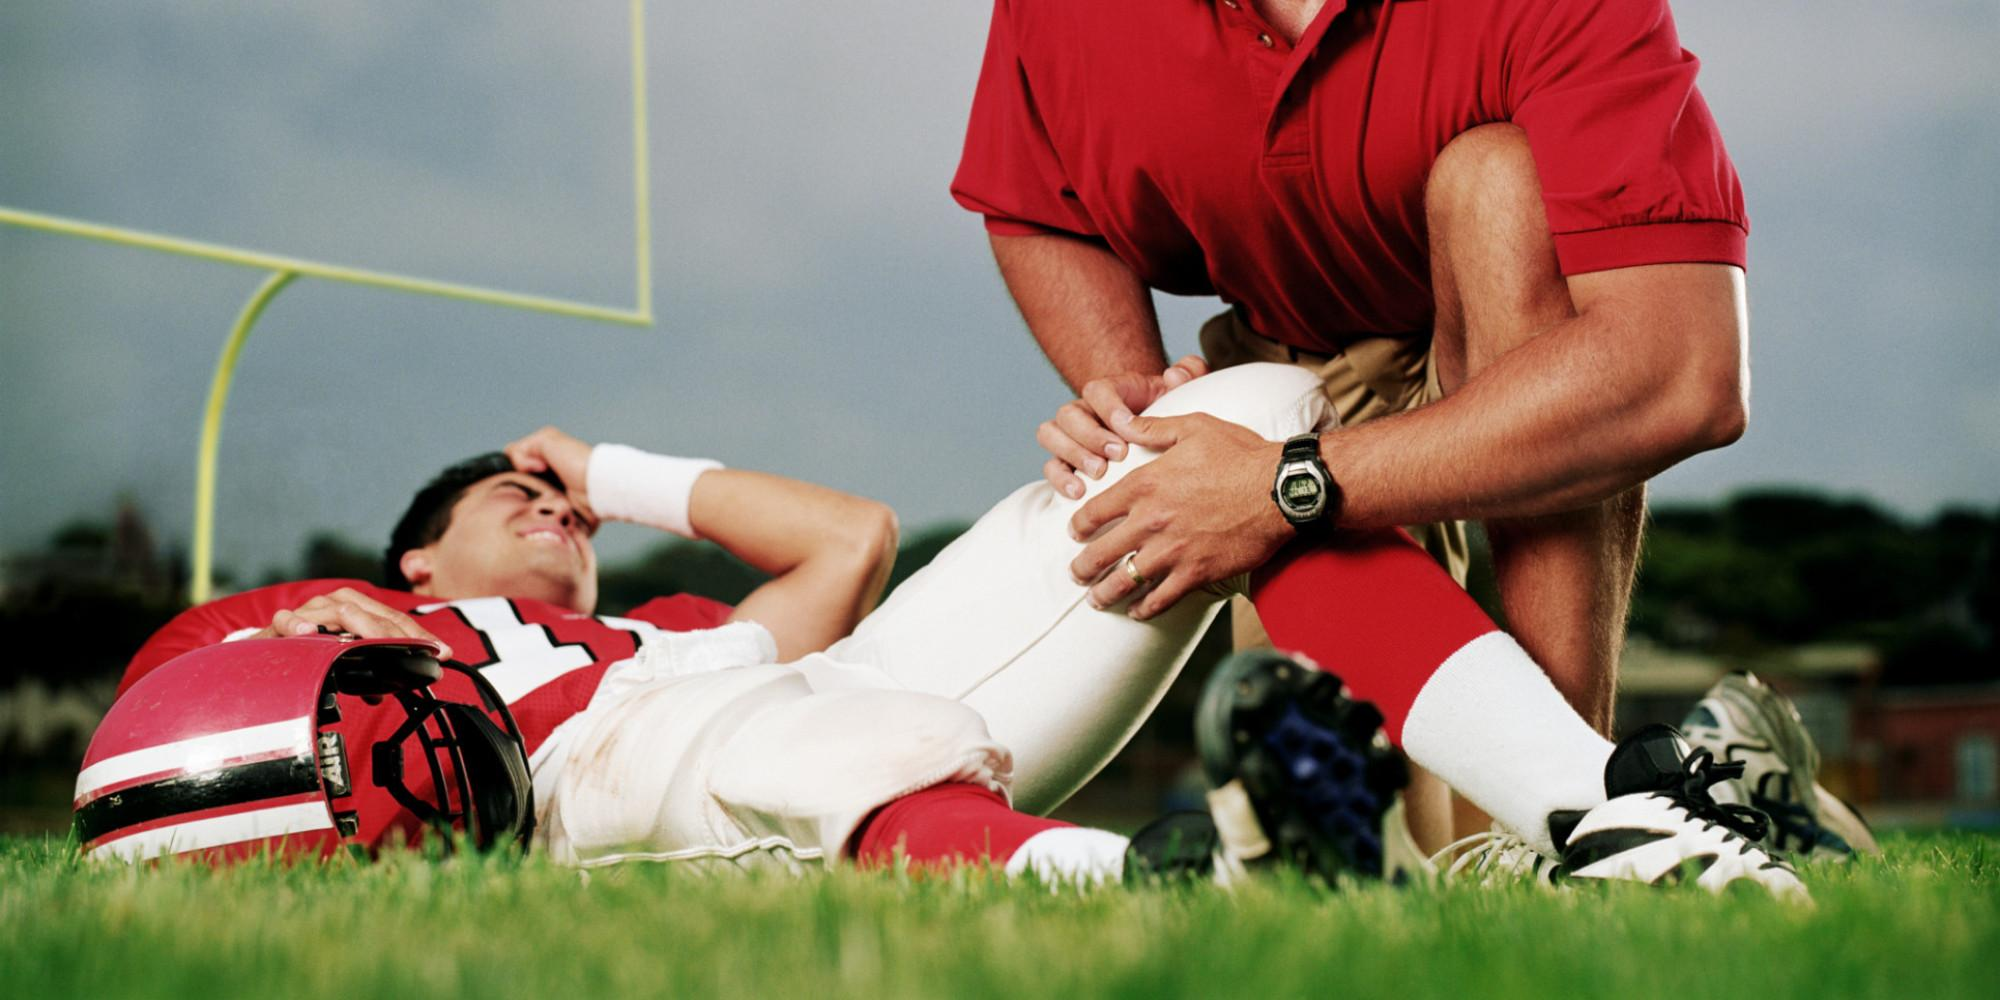 America's most popular game might actually turn out to be the most dangerous game. Over the decades, football is one of the most competitive sports that require, hard work and dedication like any other sport, but are the hard blows and constant injuries too much? Photo courtesy of huffingtonpost.com.